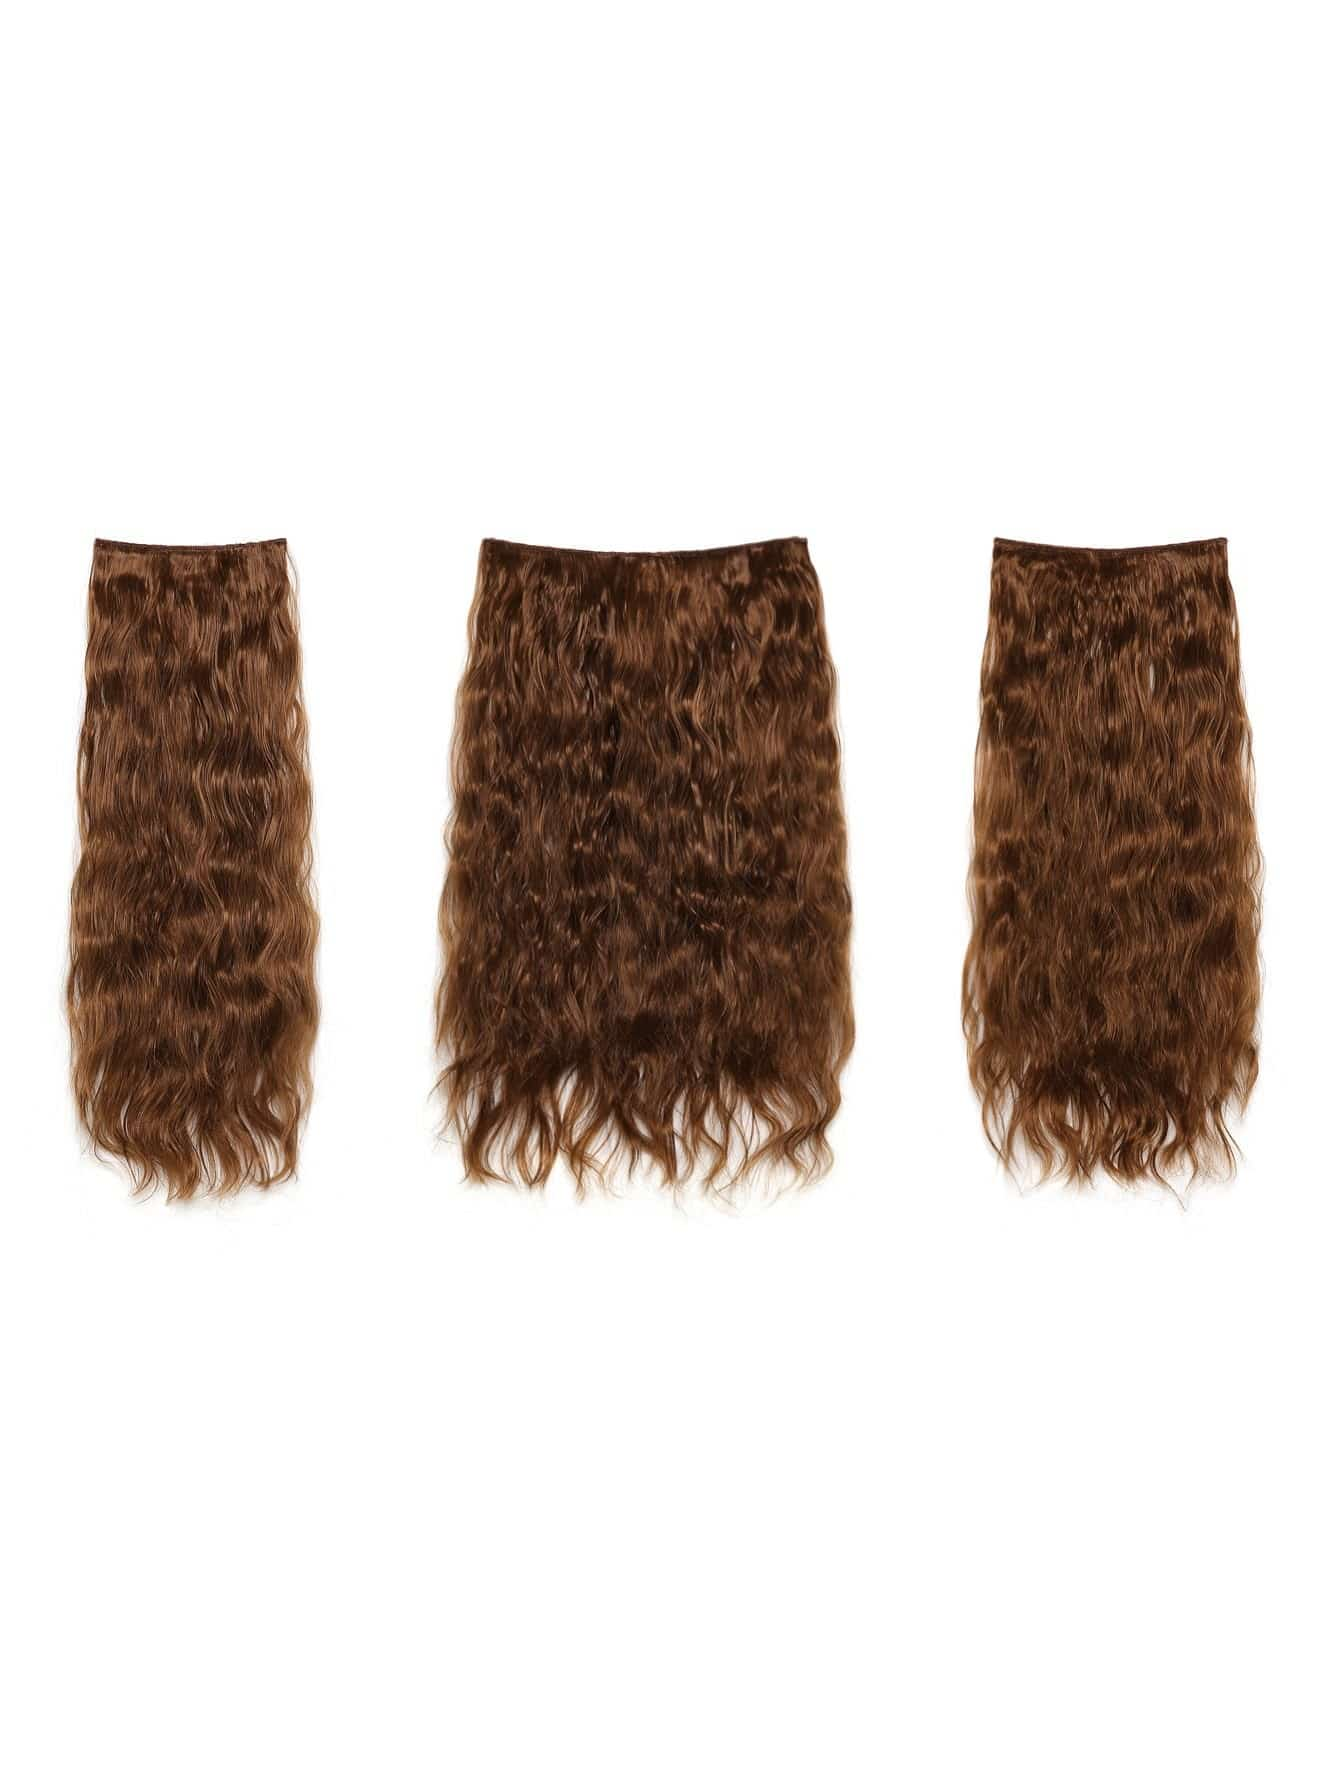 Golden Brown Clip In Curly Hair Extension 3pcs globe panther golden brown fur